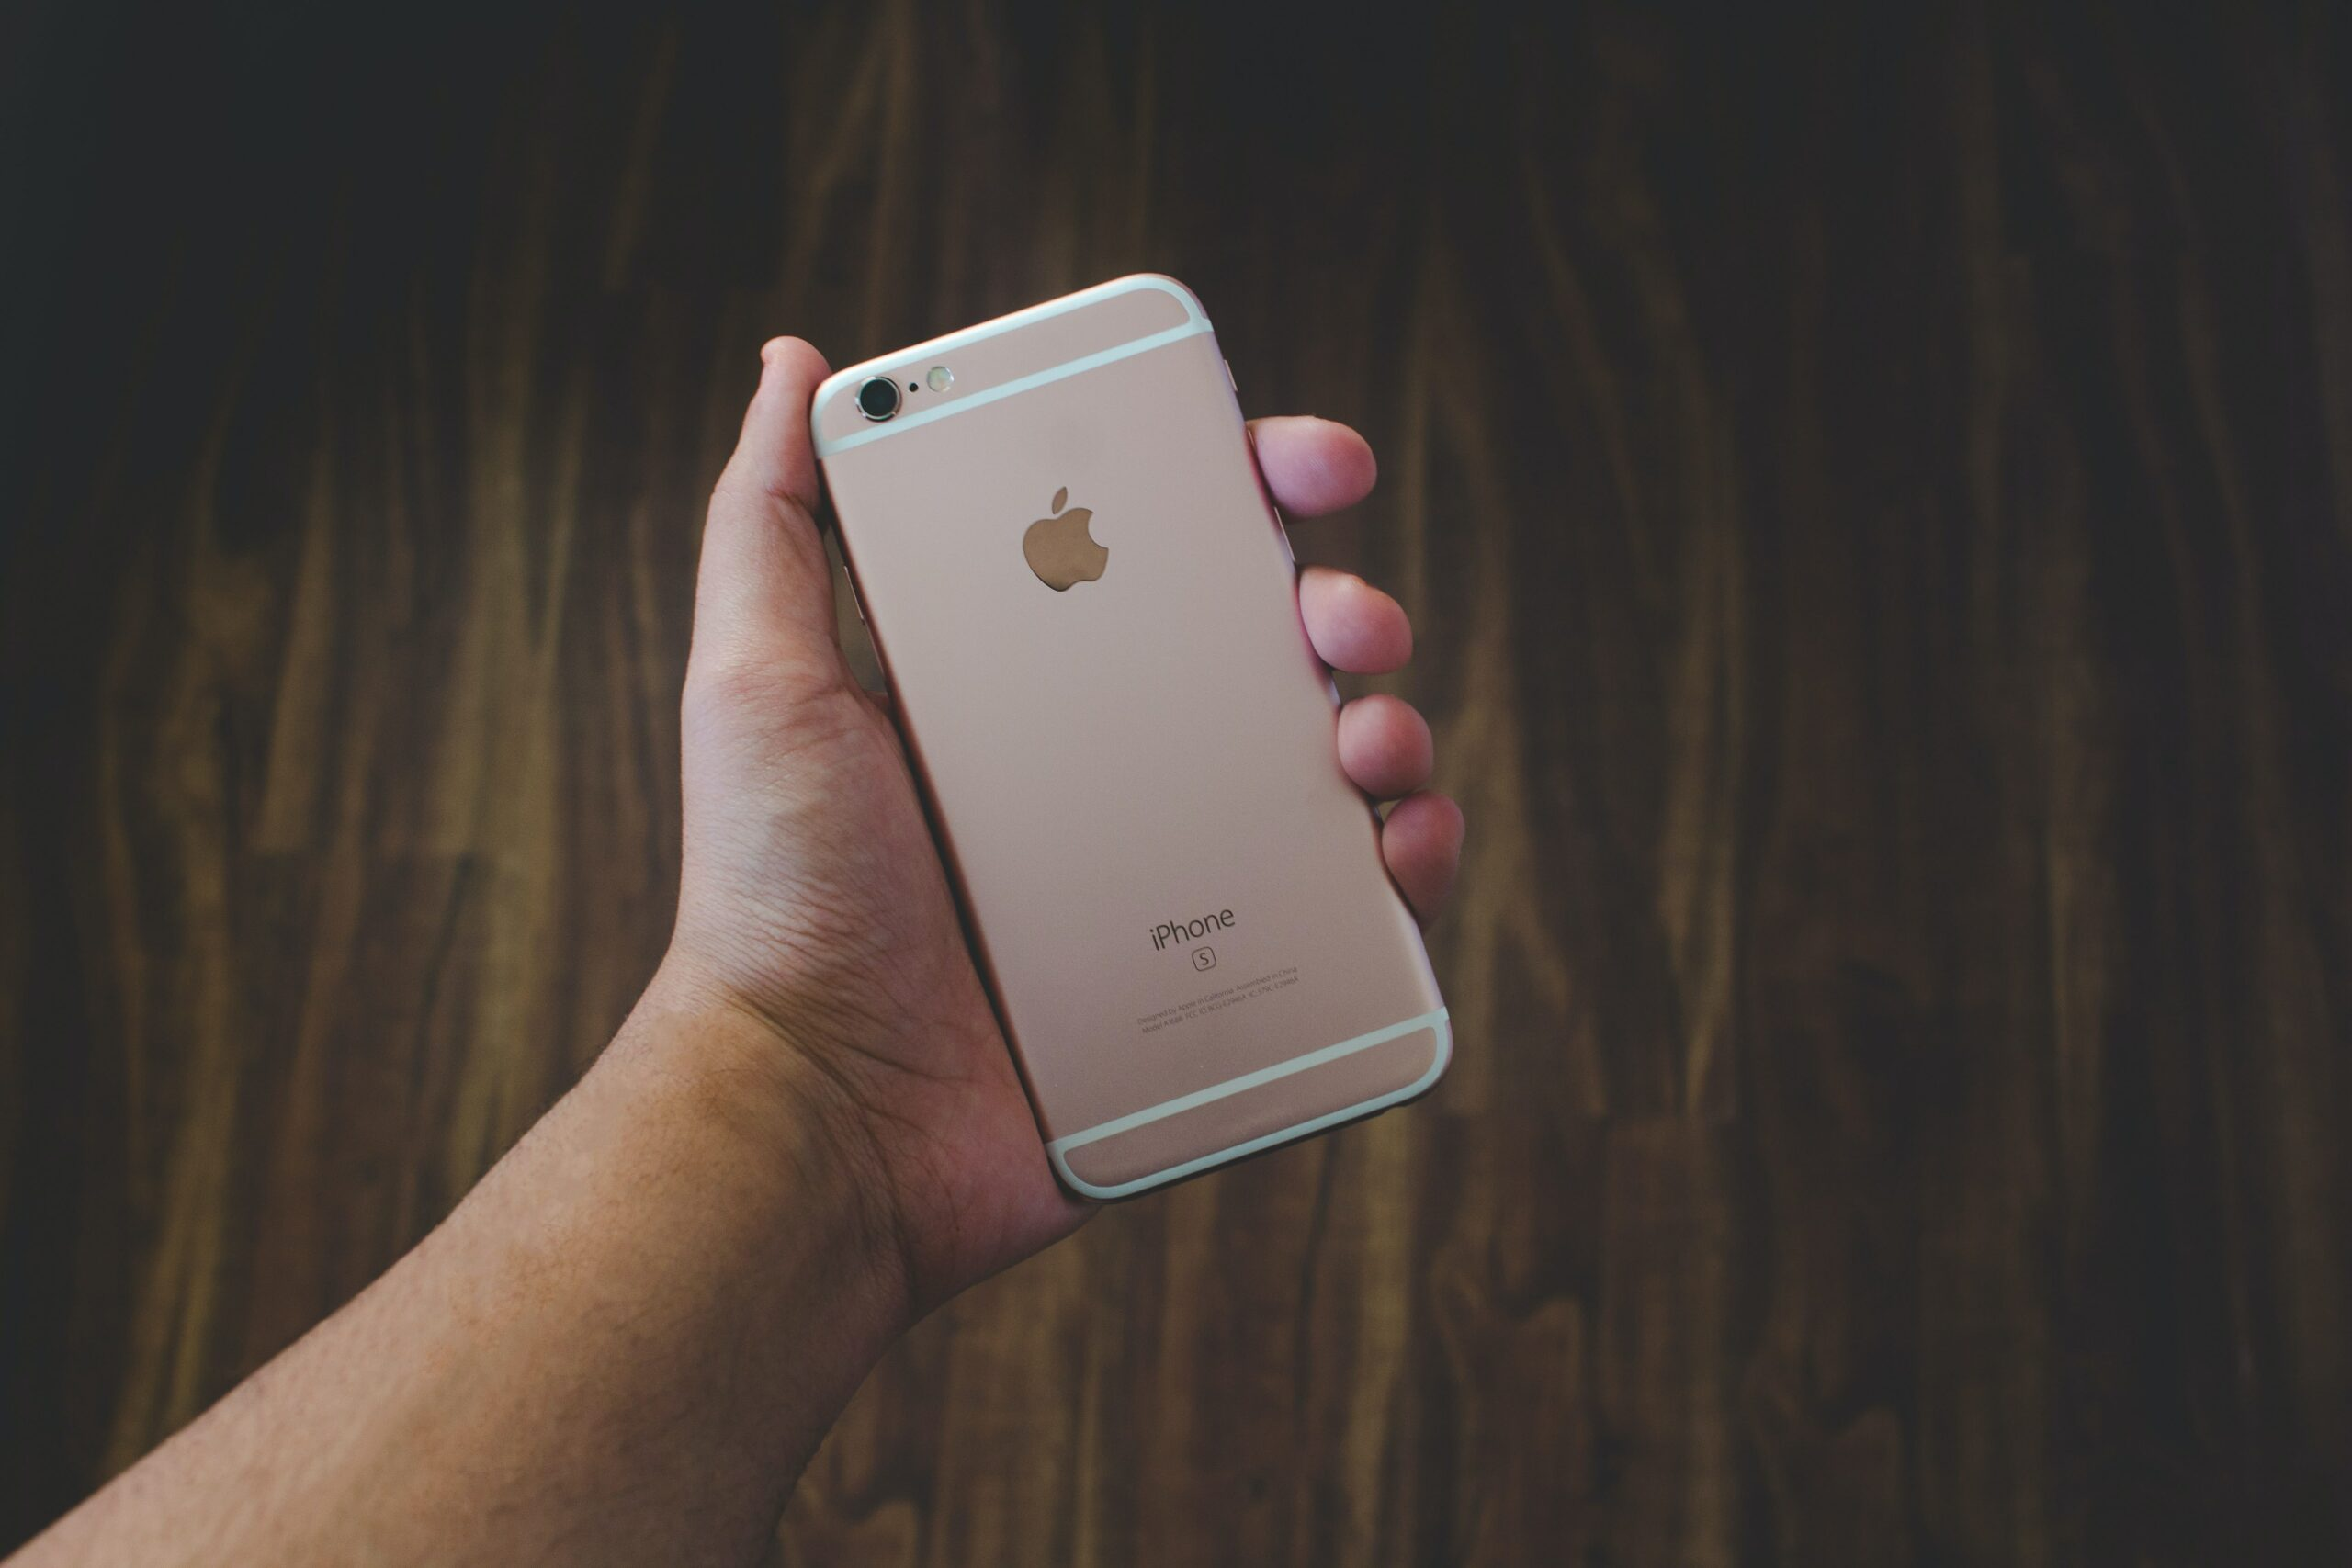 A hand holding a rose gold iPhone 6S.